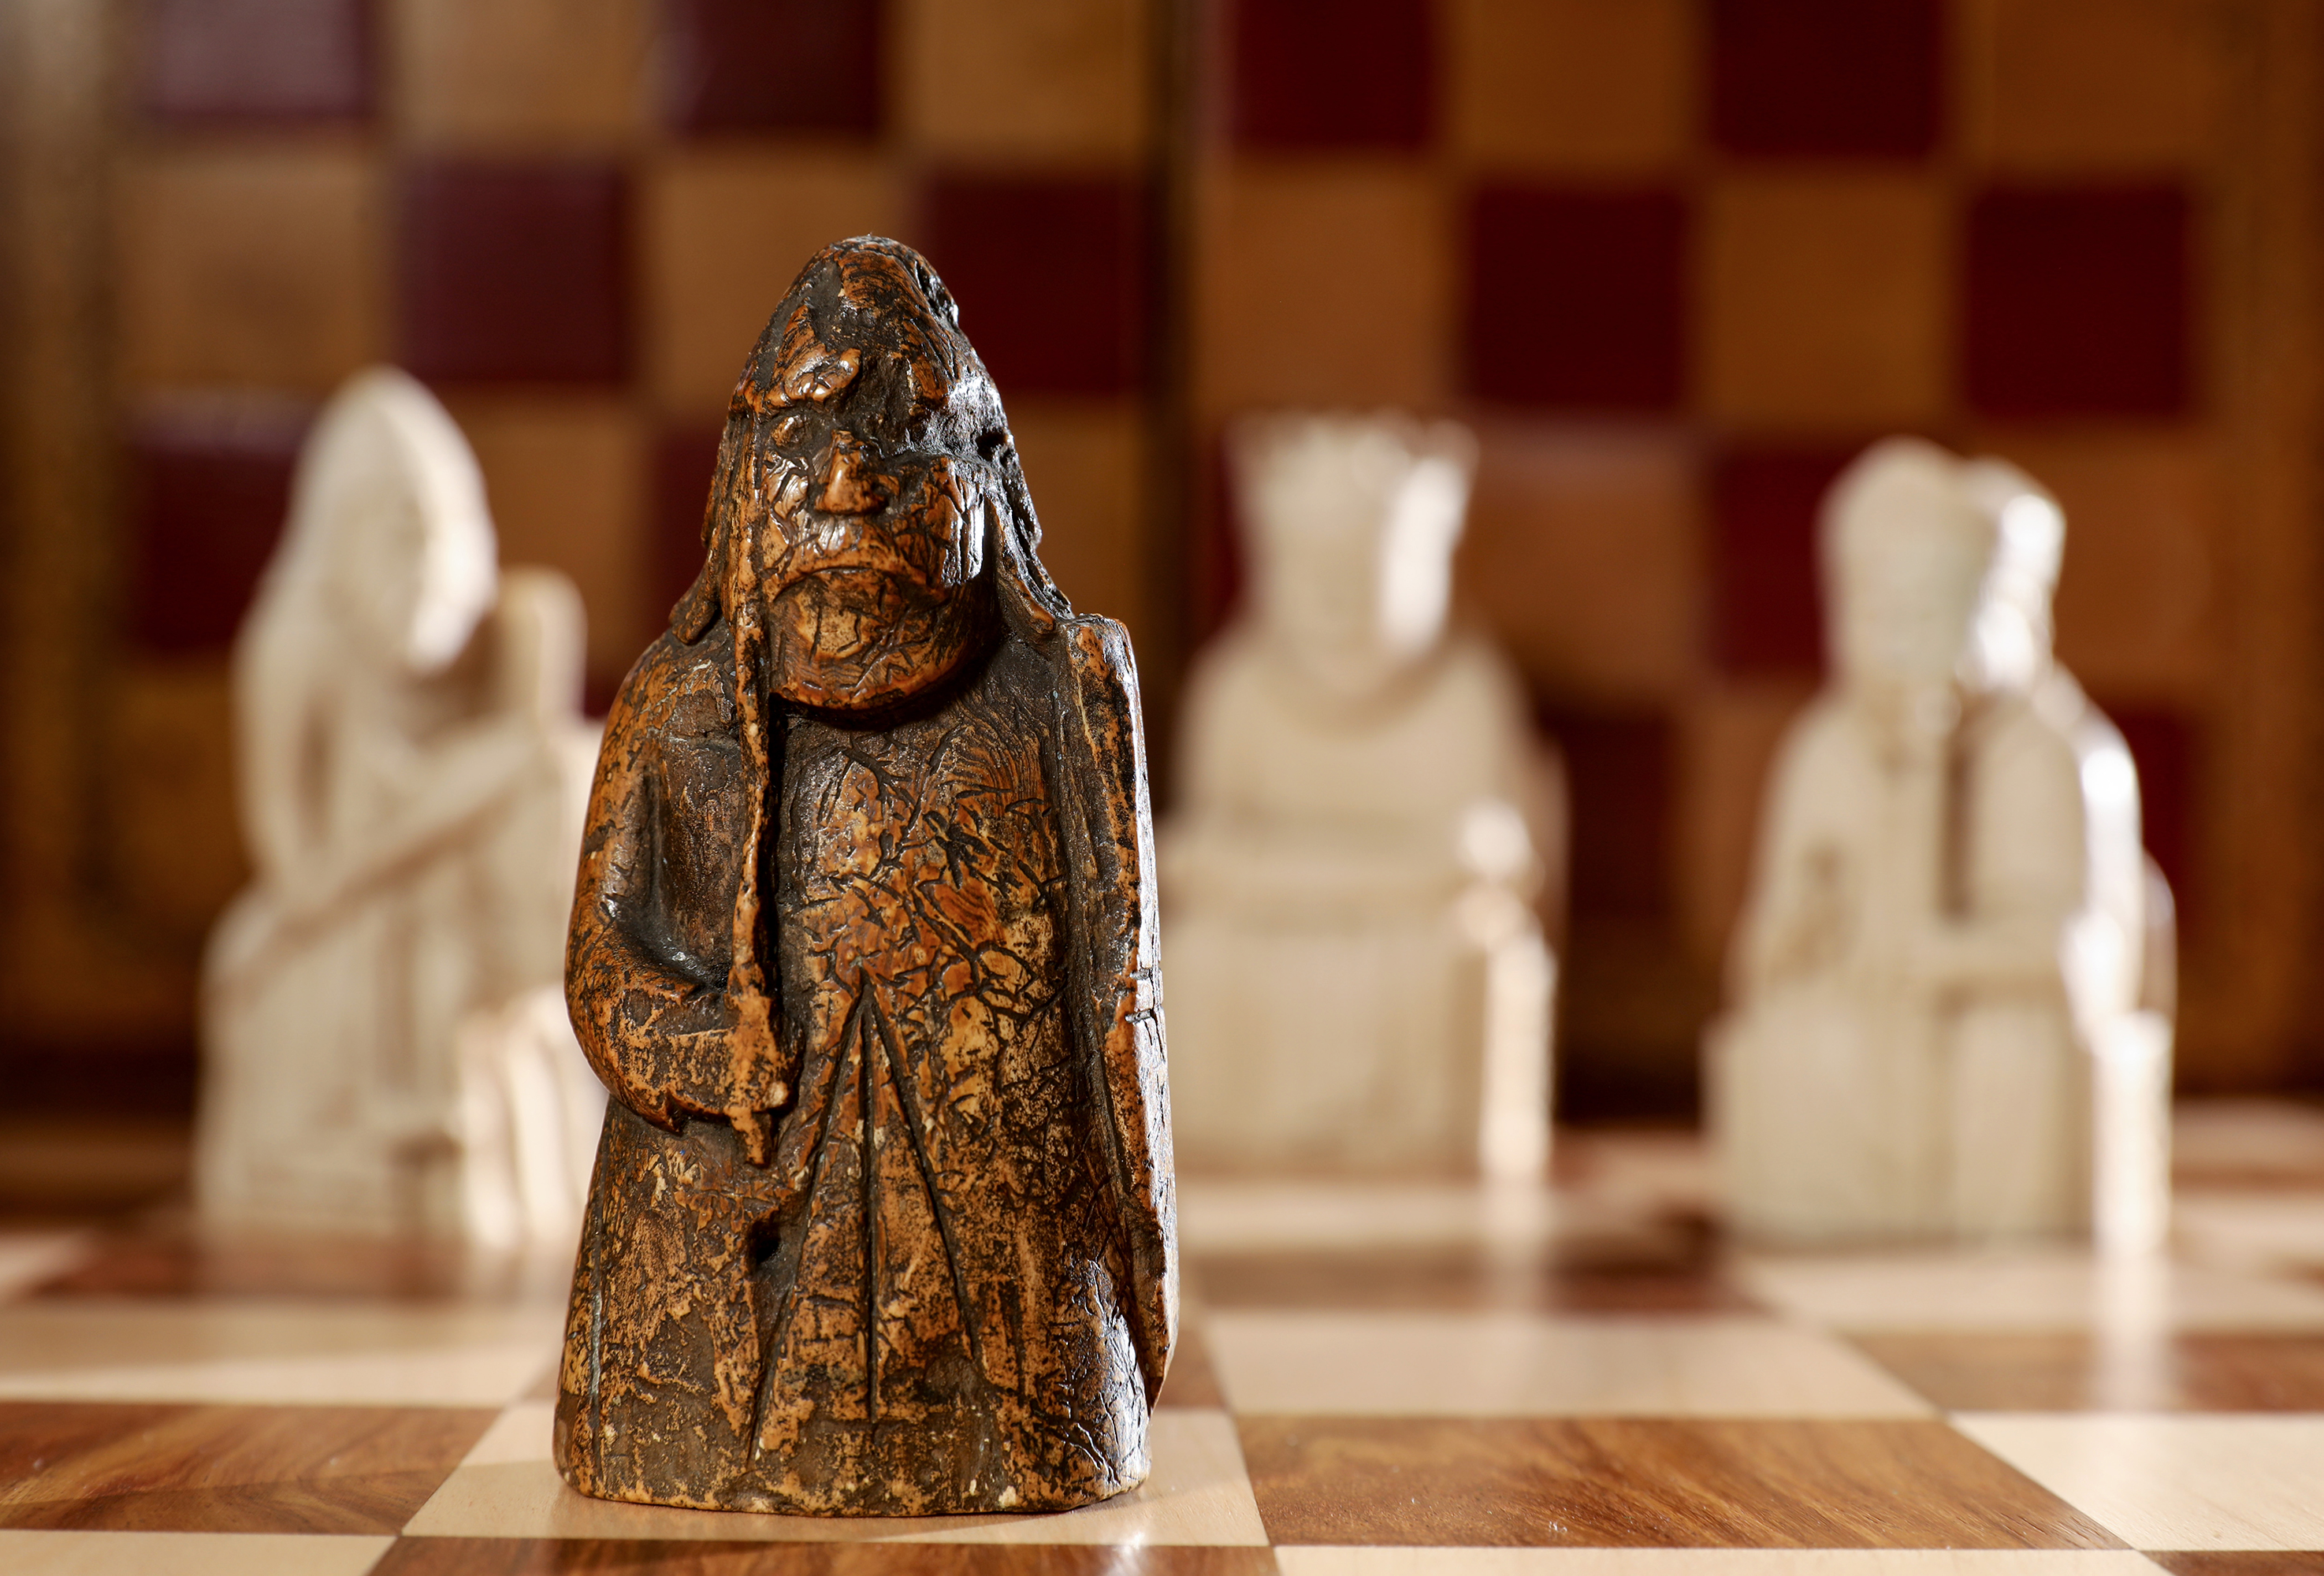 Lewis Chessman at Sotheby's Auction House